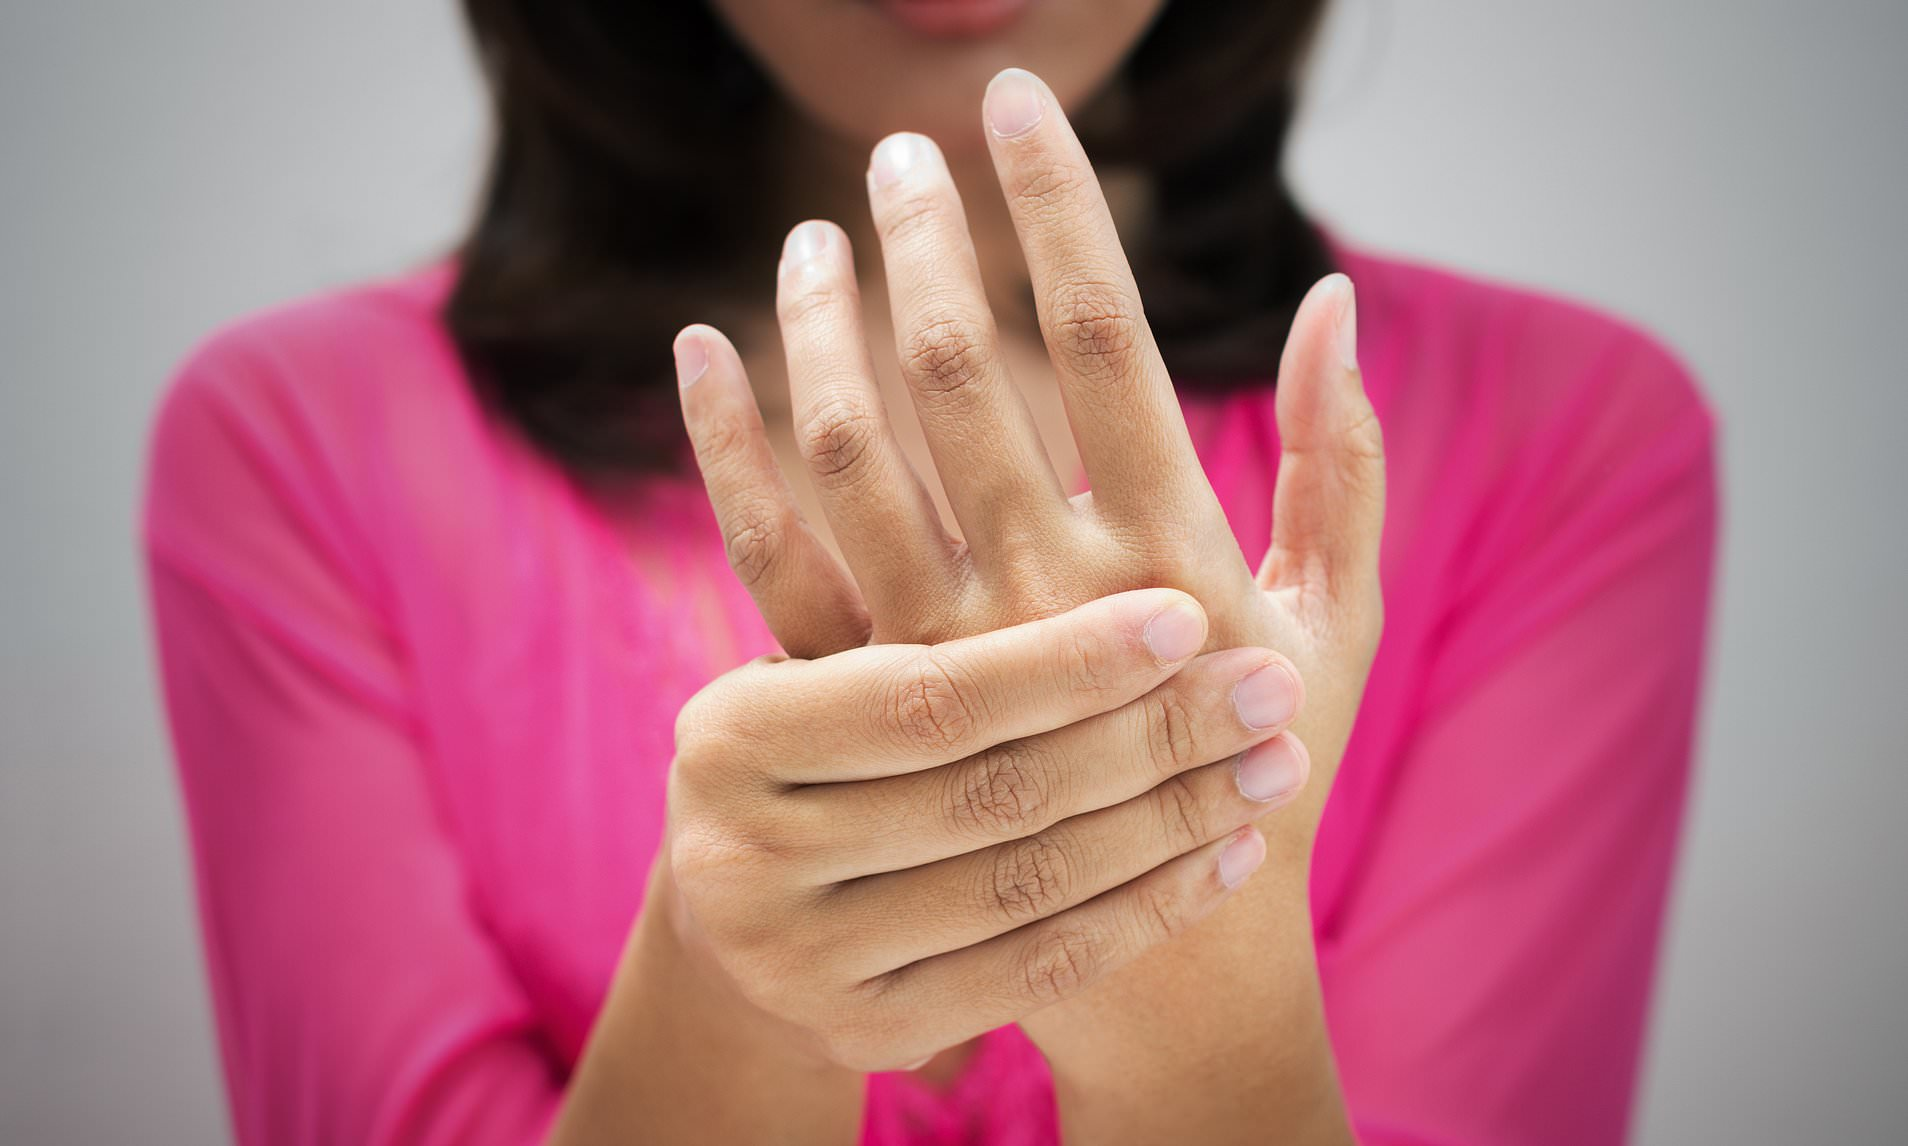 ASK THE GP: How to stop diabetes from making your fingers numb ...